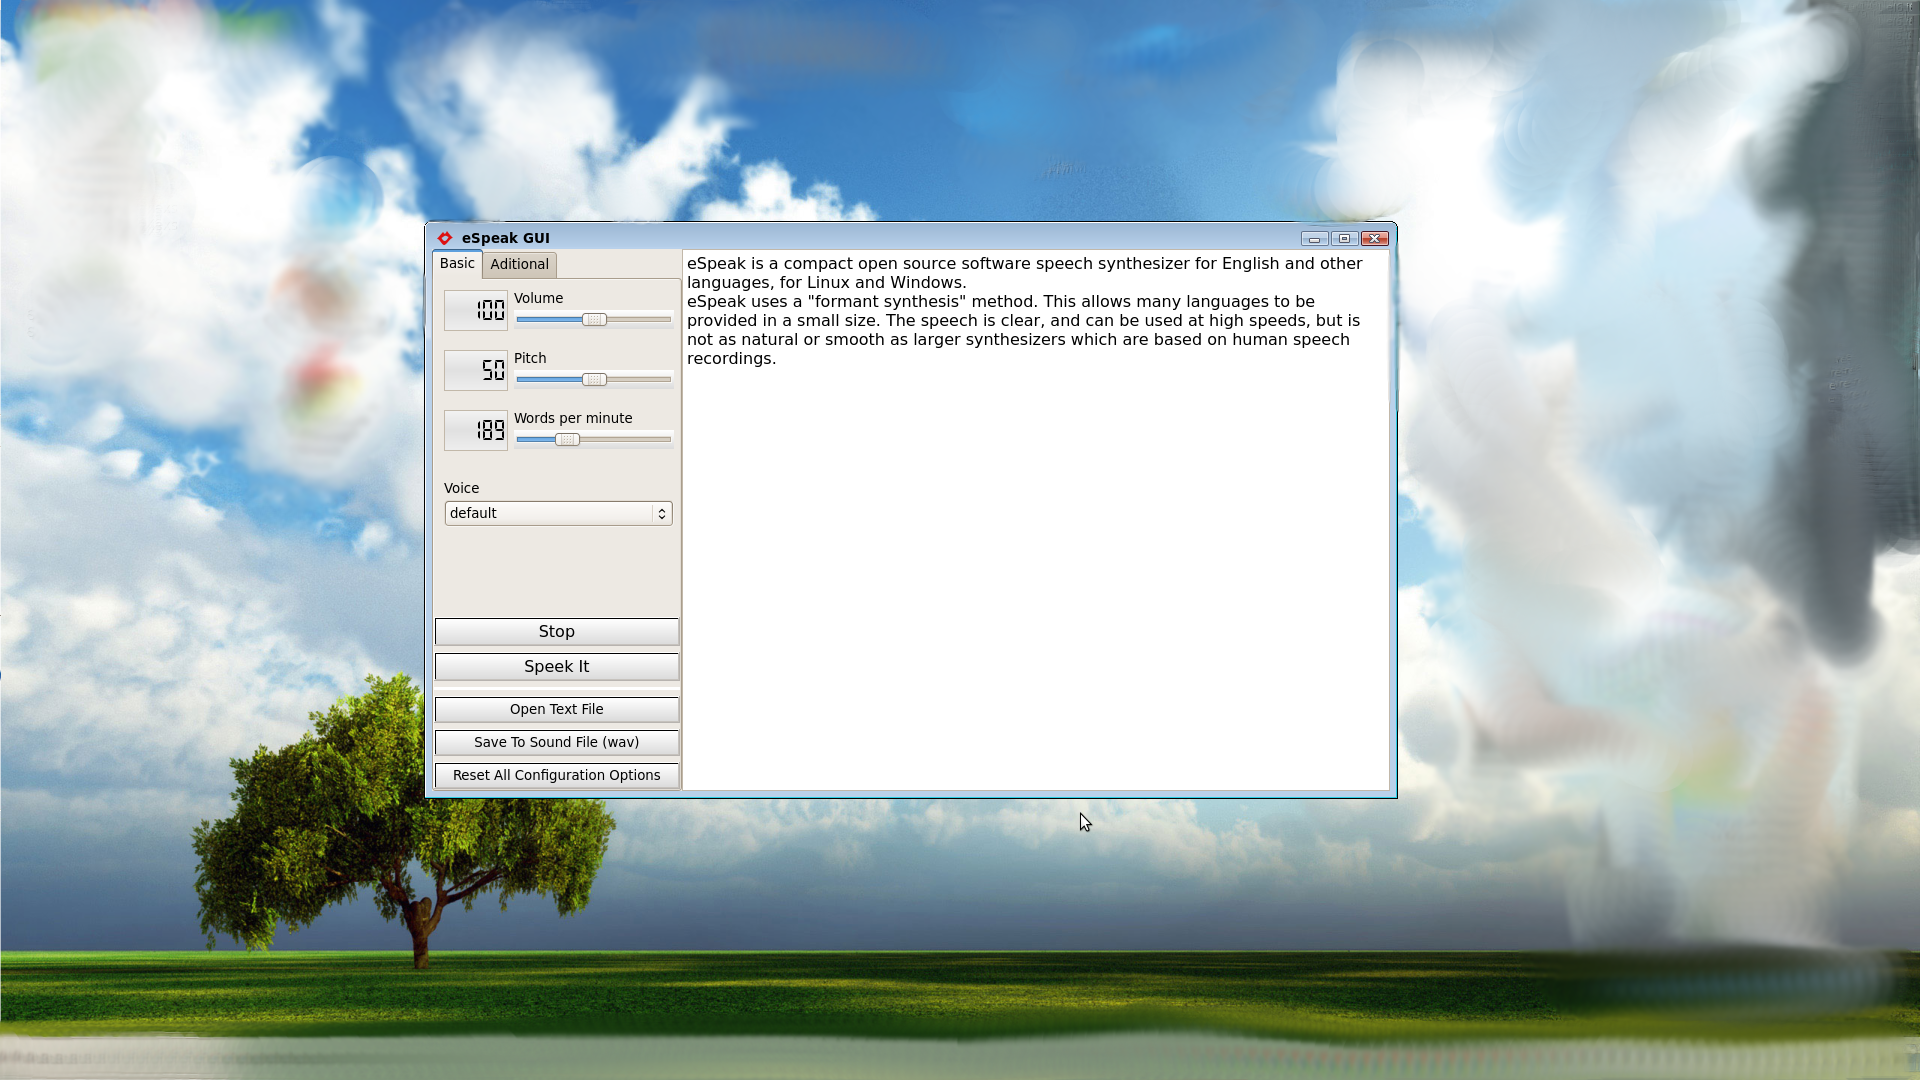 Simple graphical user interface for espeak